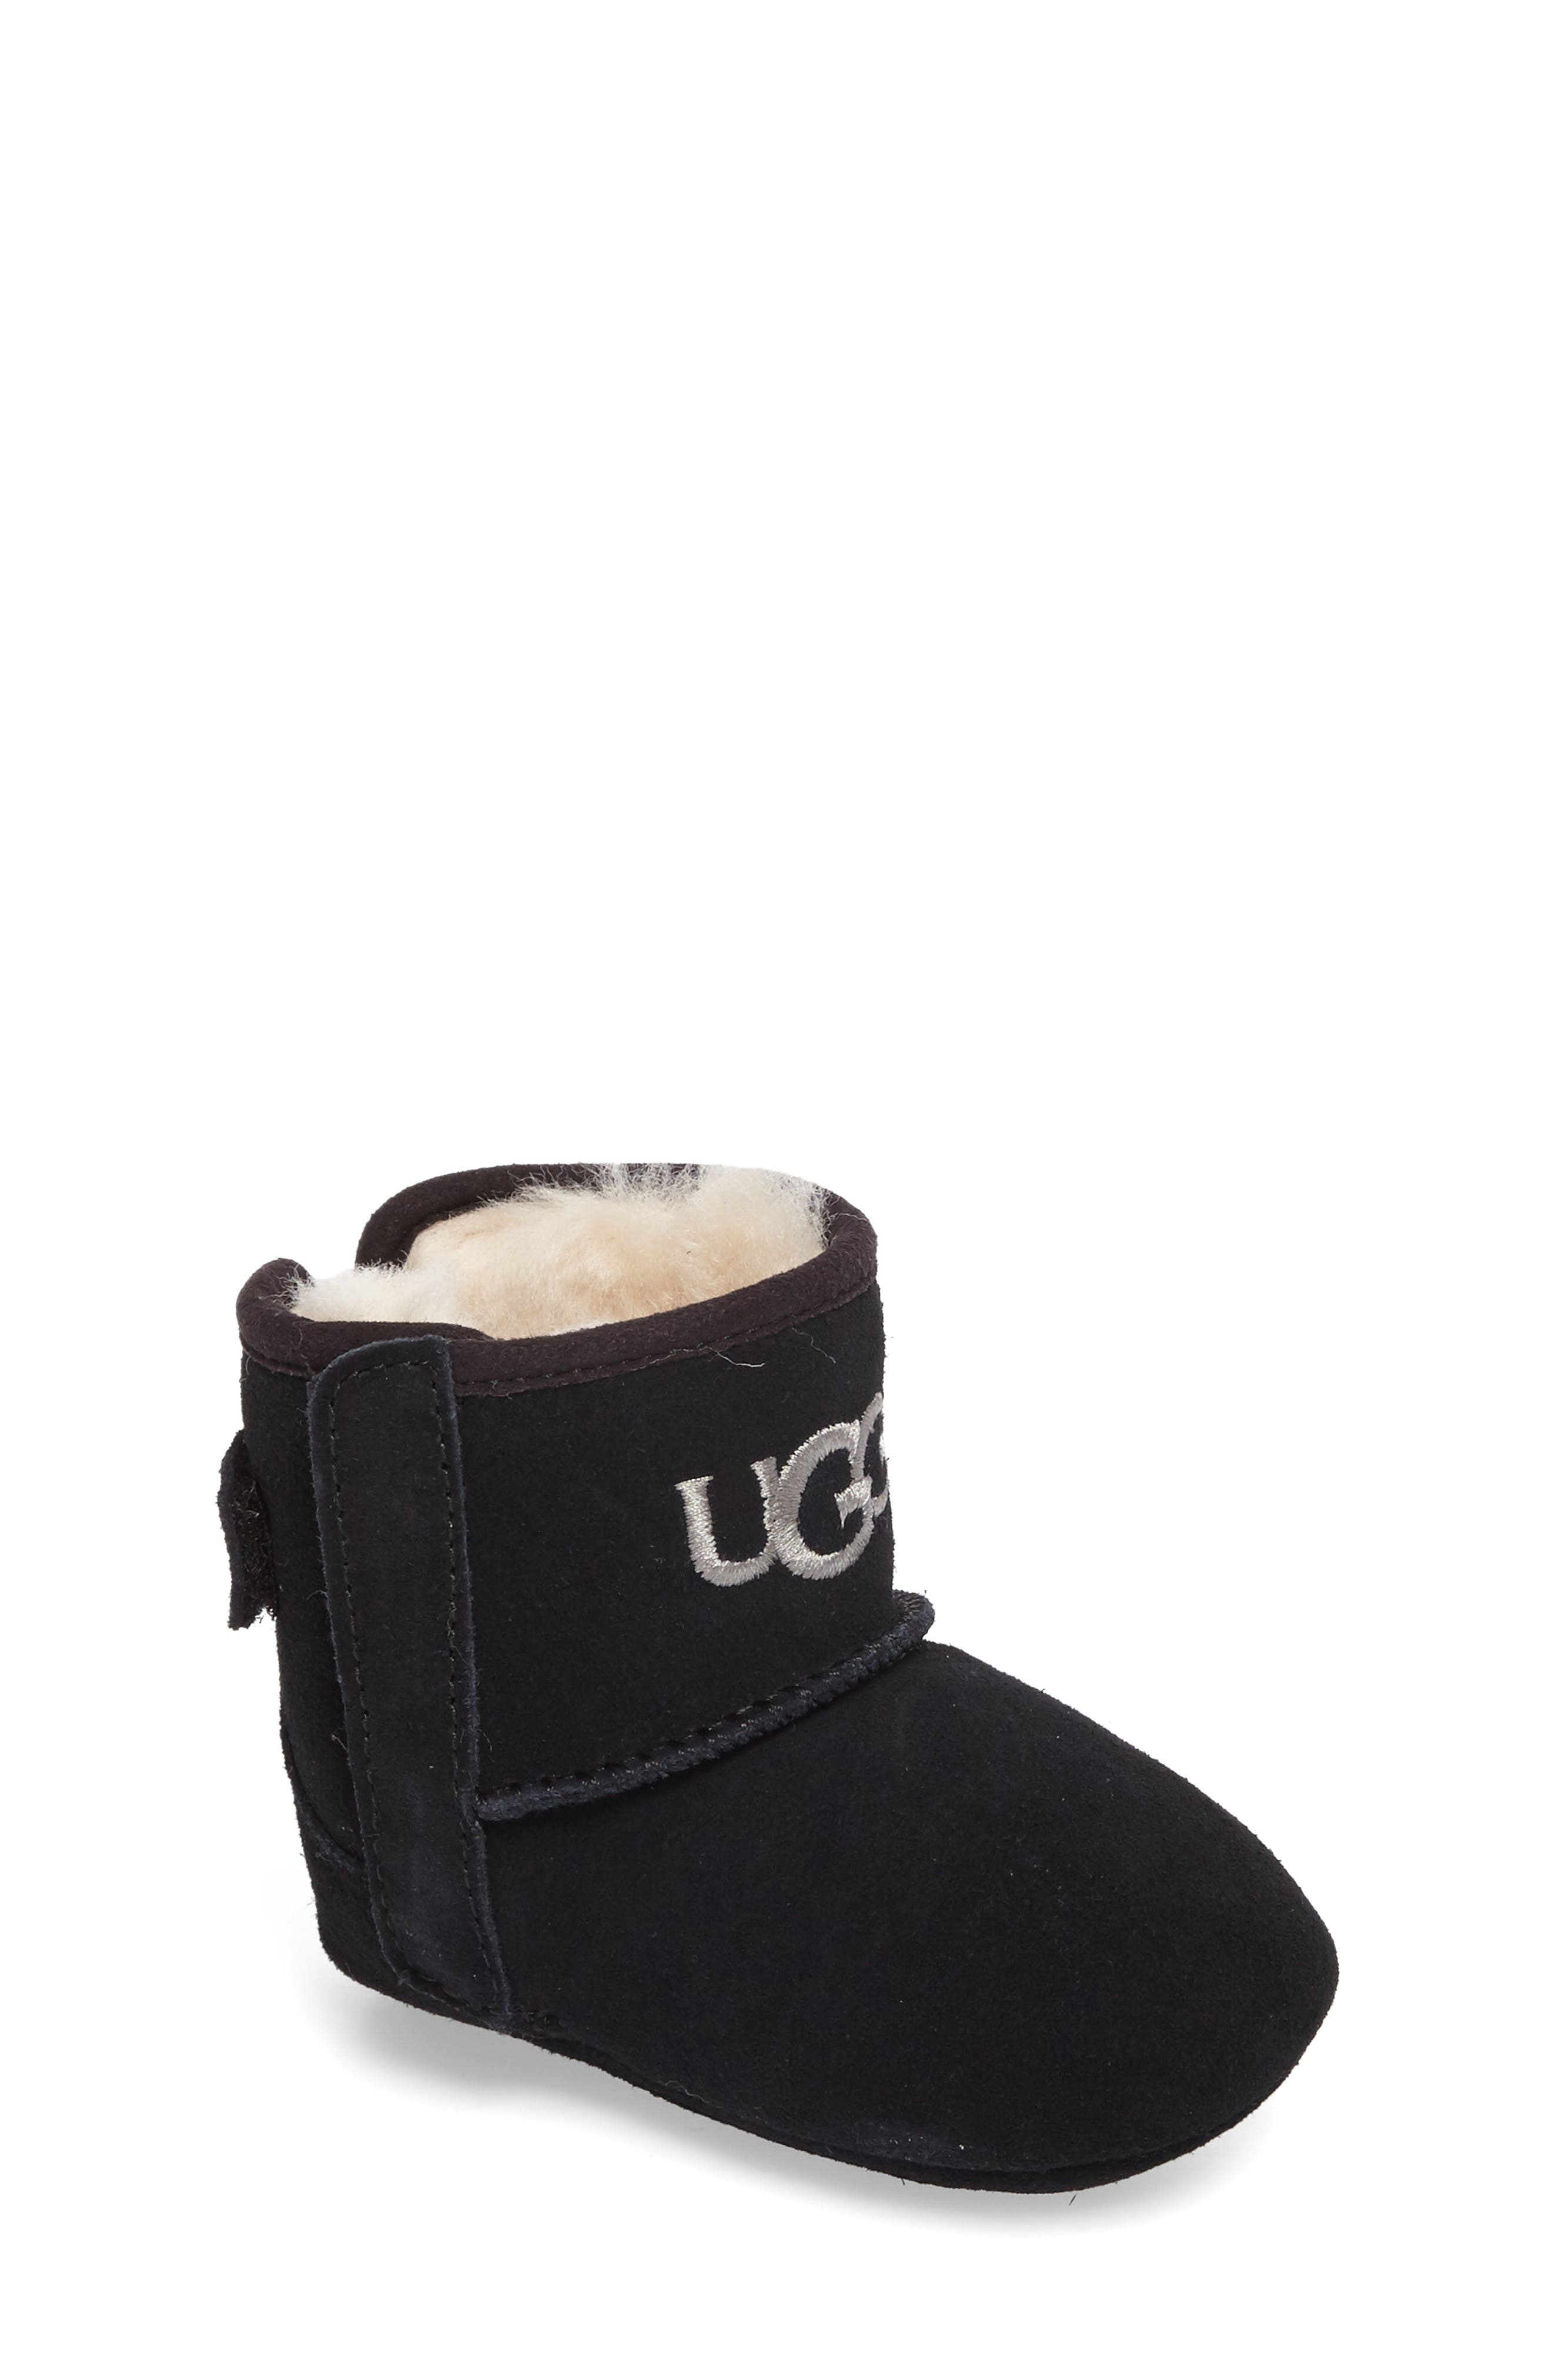 Jesse II Bow Boot,                         Main,                         color, Black